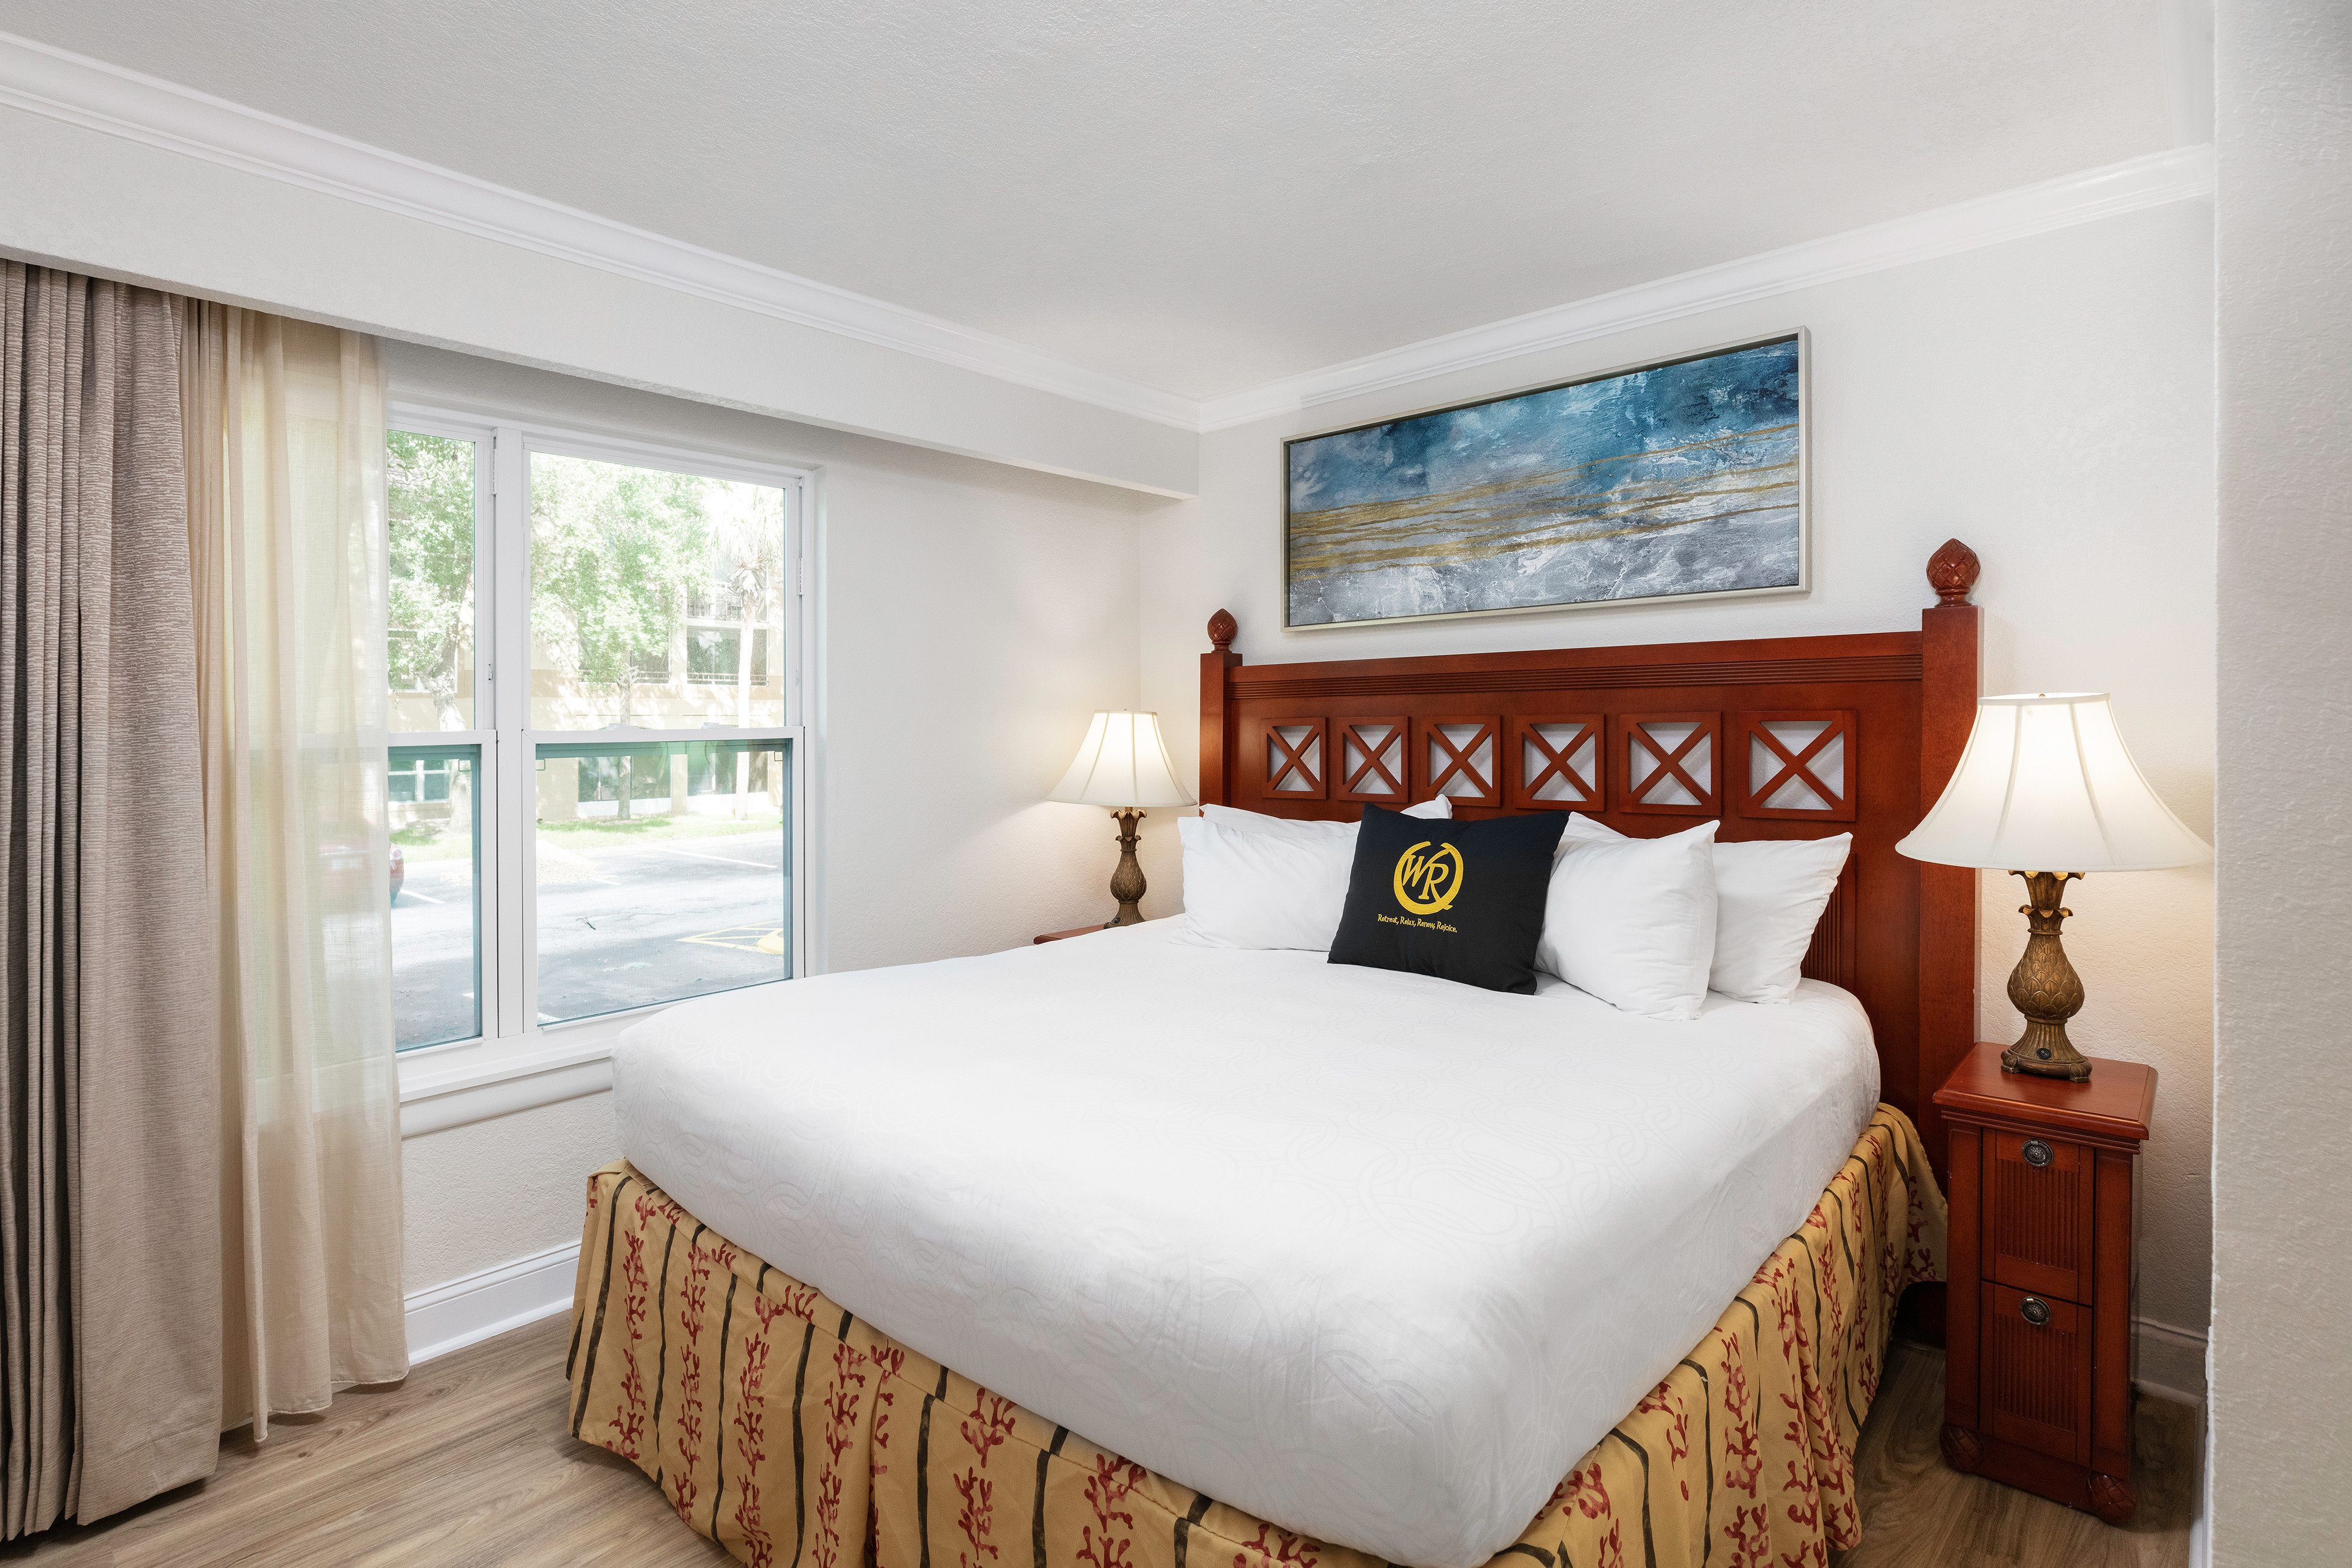 Lake Buena Vista resort With 2 Bedroom Villa Suites | Accommodations with King Bed